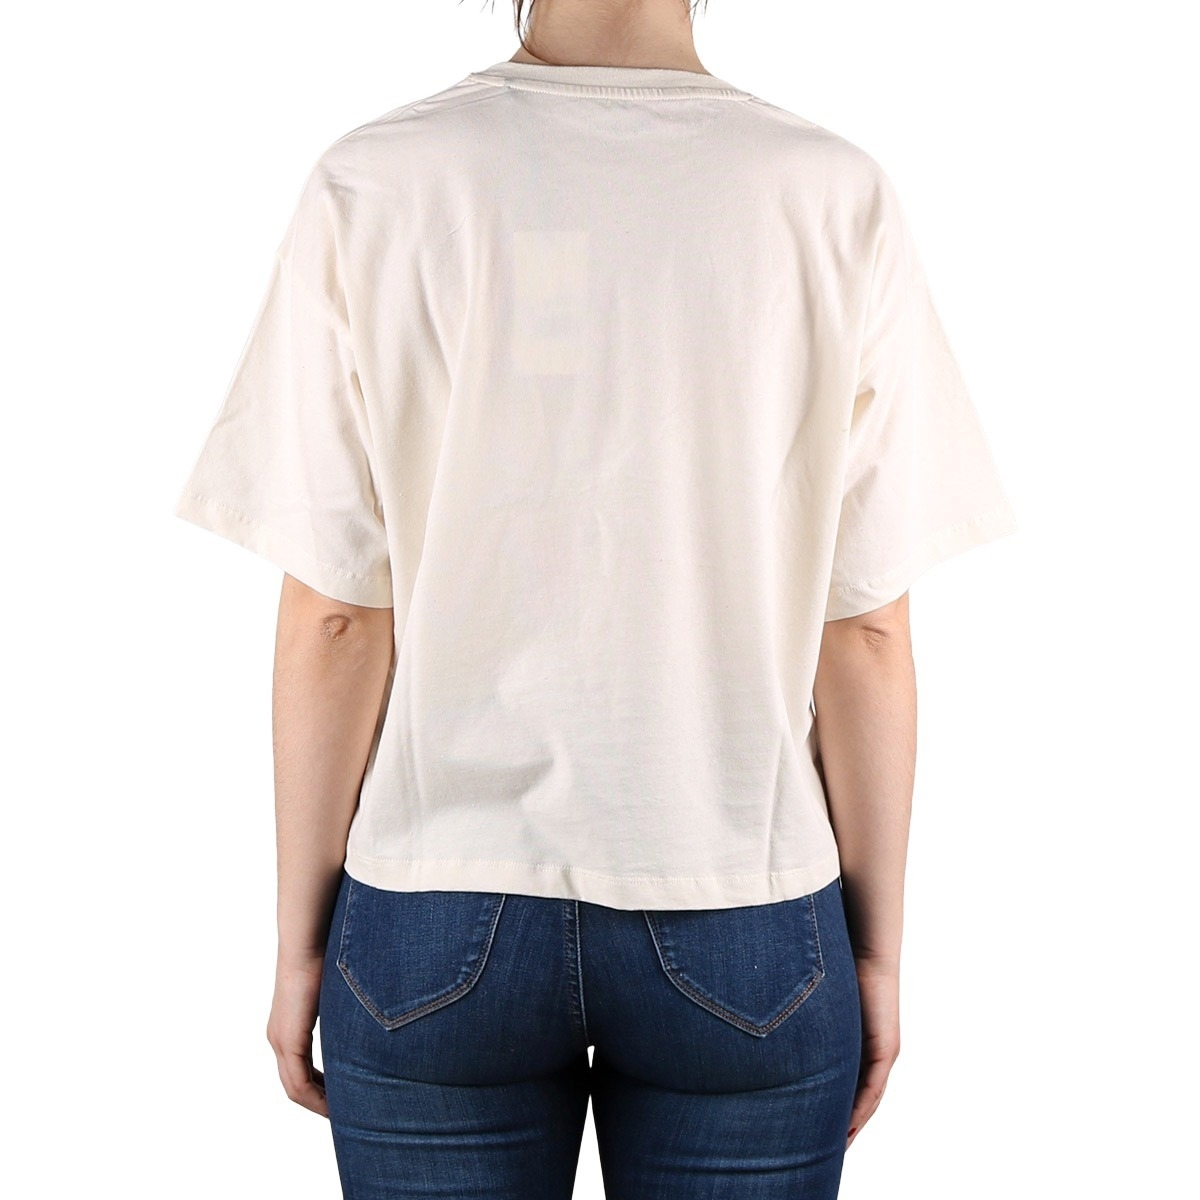 Pepe Jeans Camiseta Paola Champagne Blanco Roto Mujer